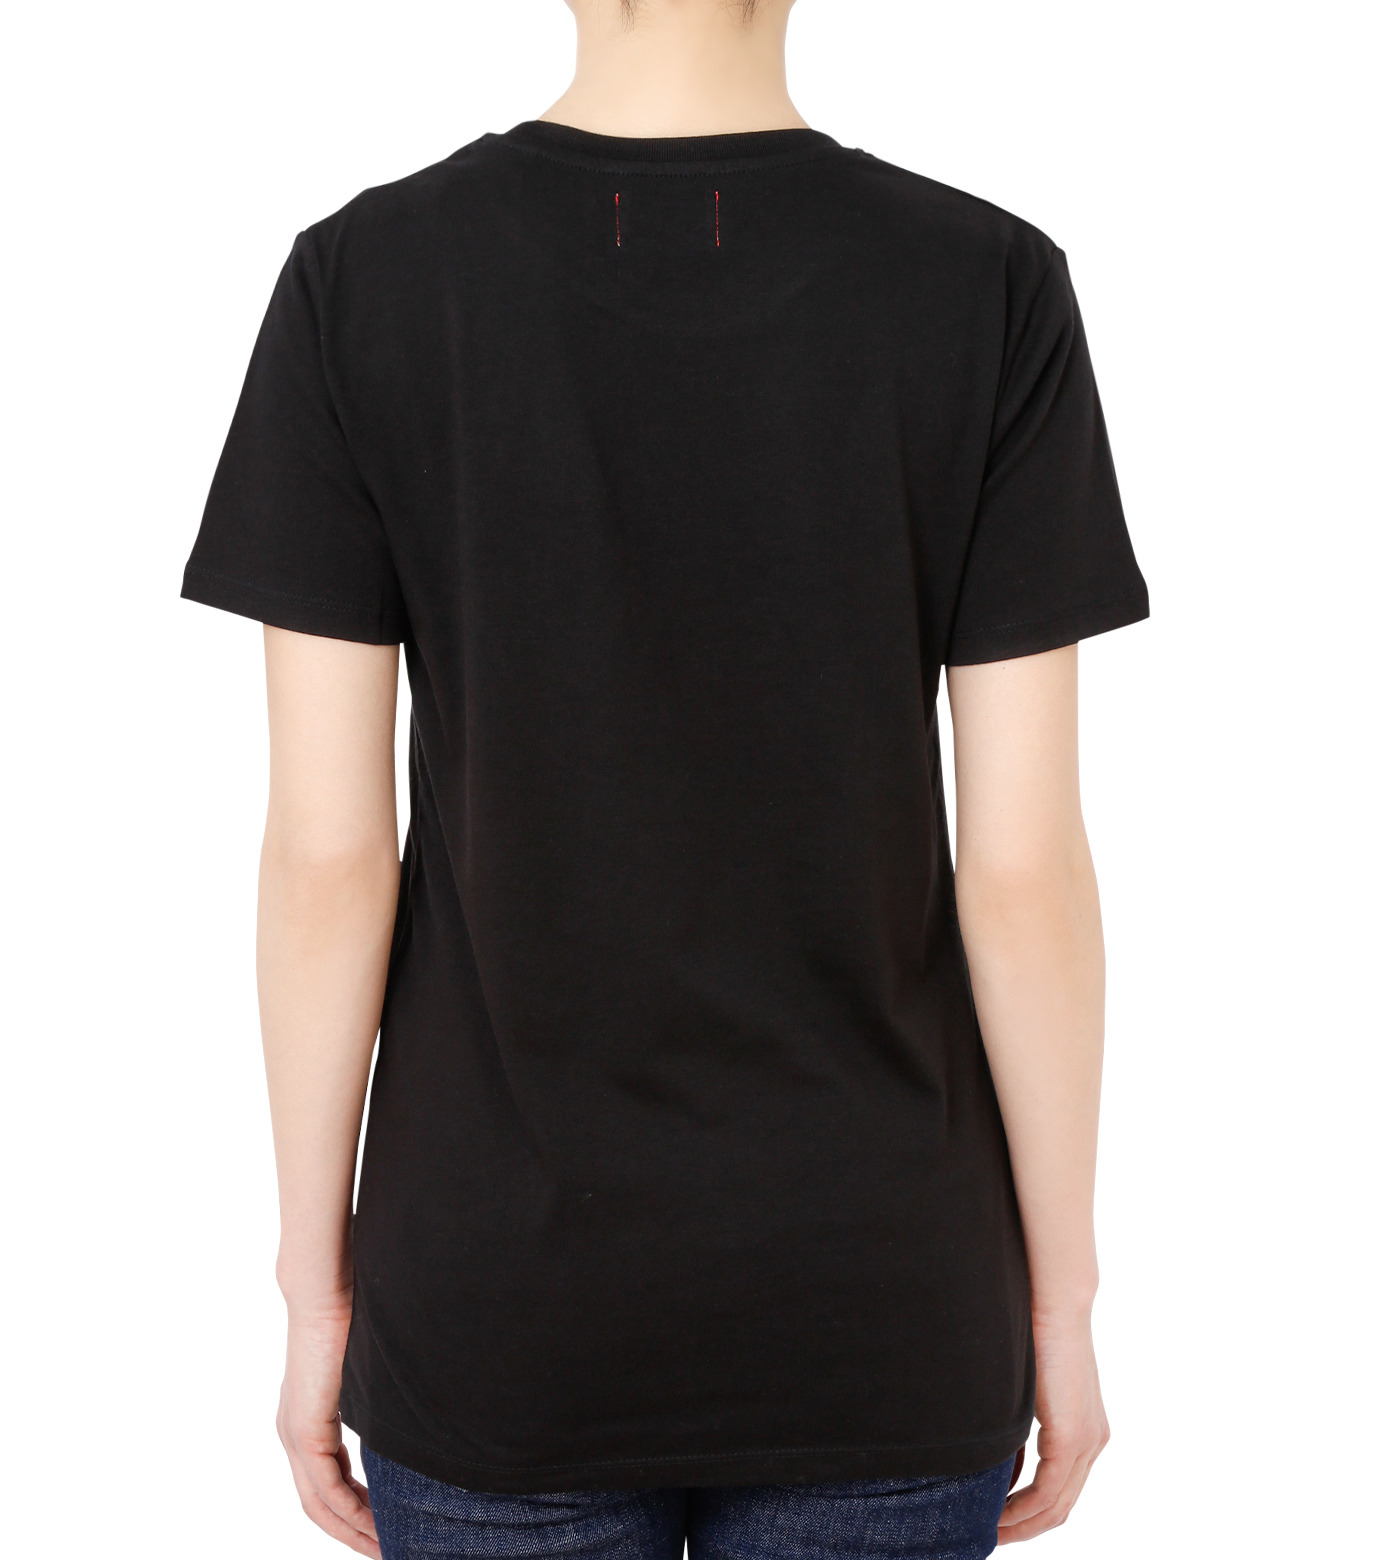 No One(ノーワン)のEmblem T-shirt-BLACK(カットソー/cut and sewn)-SS980B-13 拡大詳細画像2